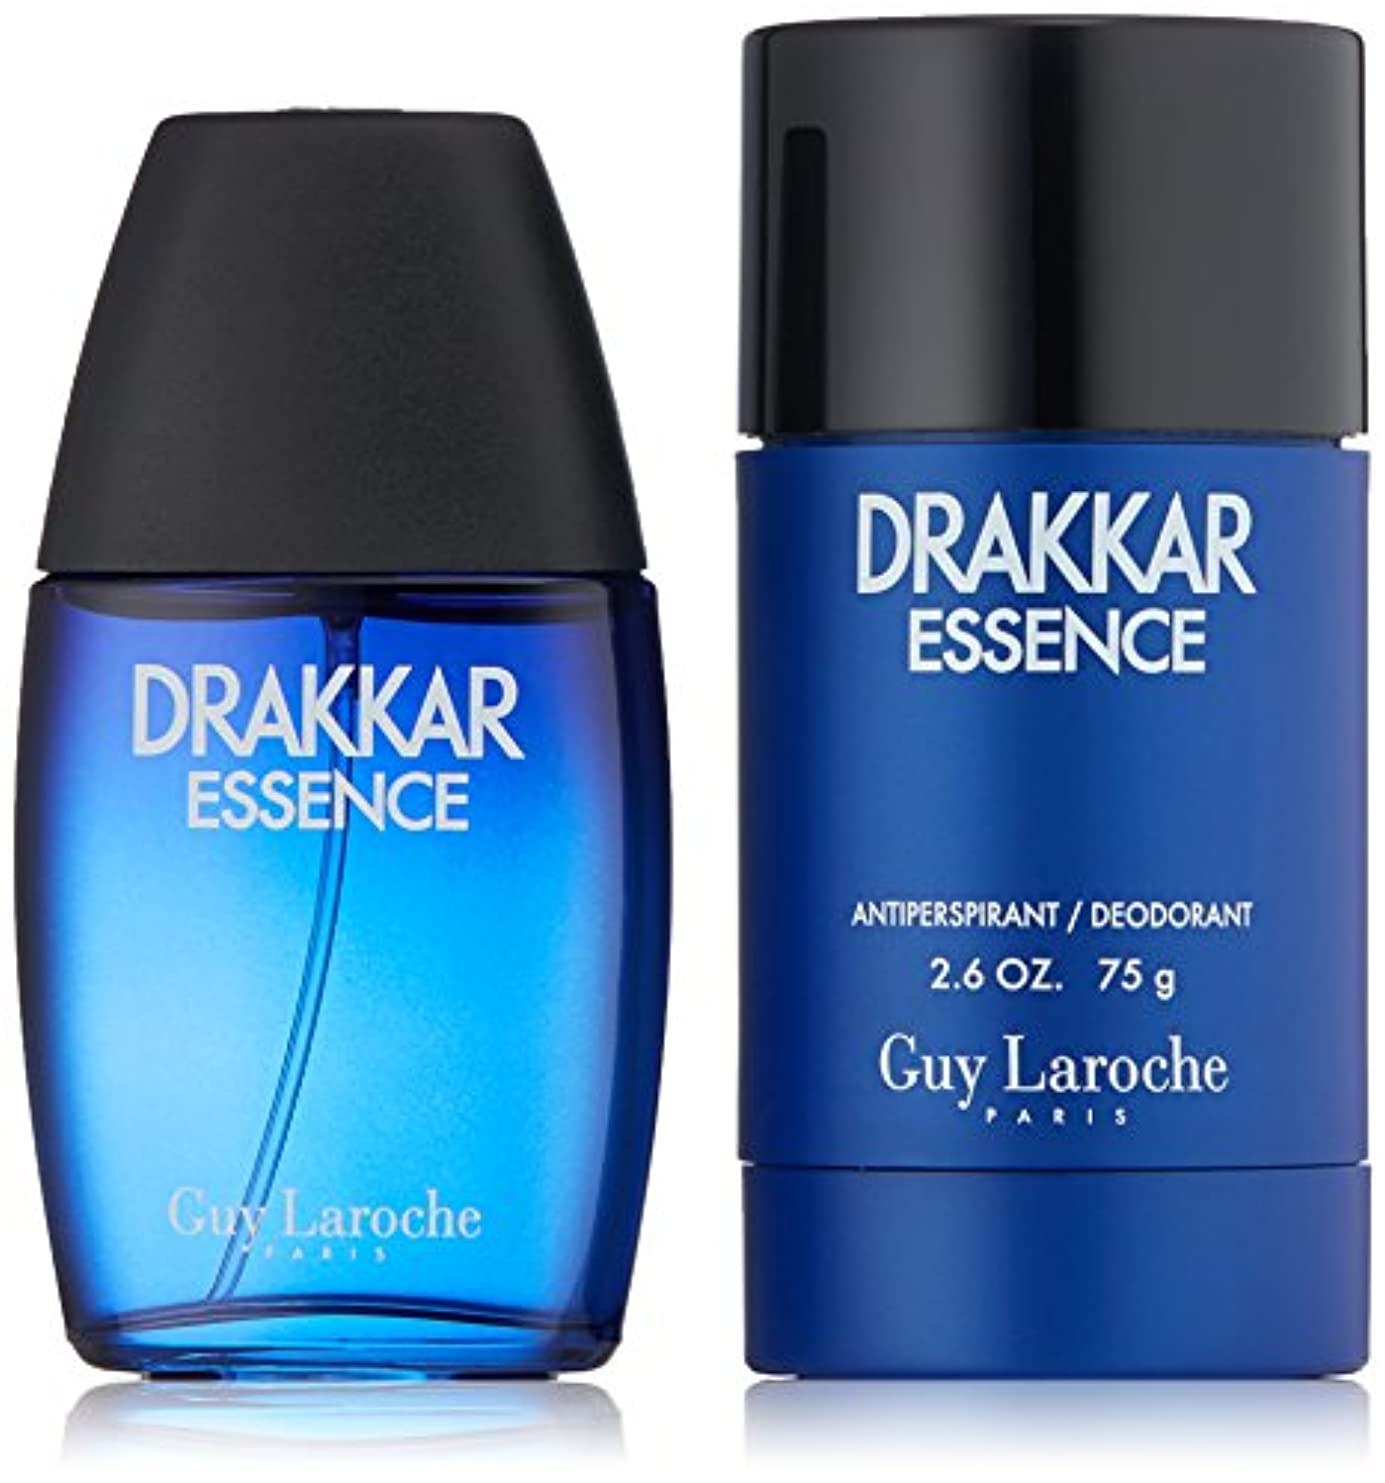 関与するサーキュレーションくるくるギラロッシュ Drakkar Essence Coffret: Eau De Toilette Spray 30ml/1oz + Antiperspirant Deodorant Stick 75g/2.6oz 2pcs...